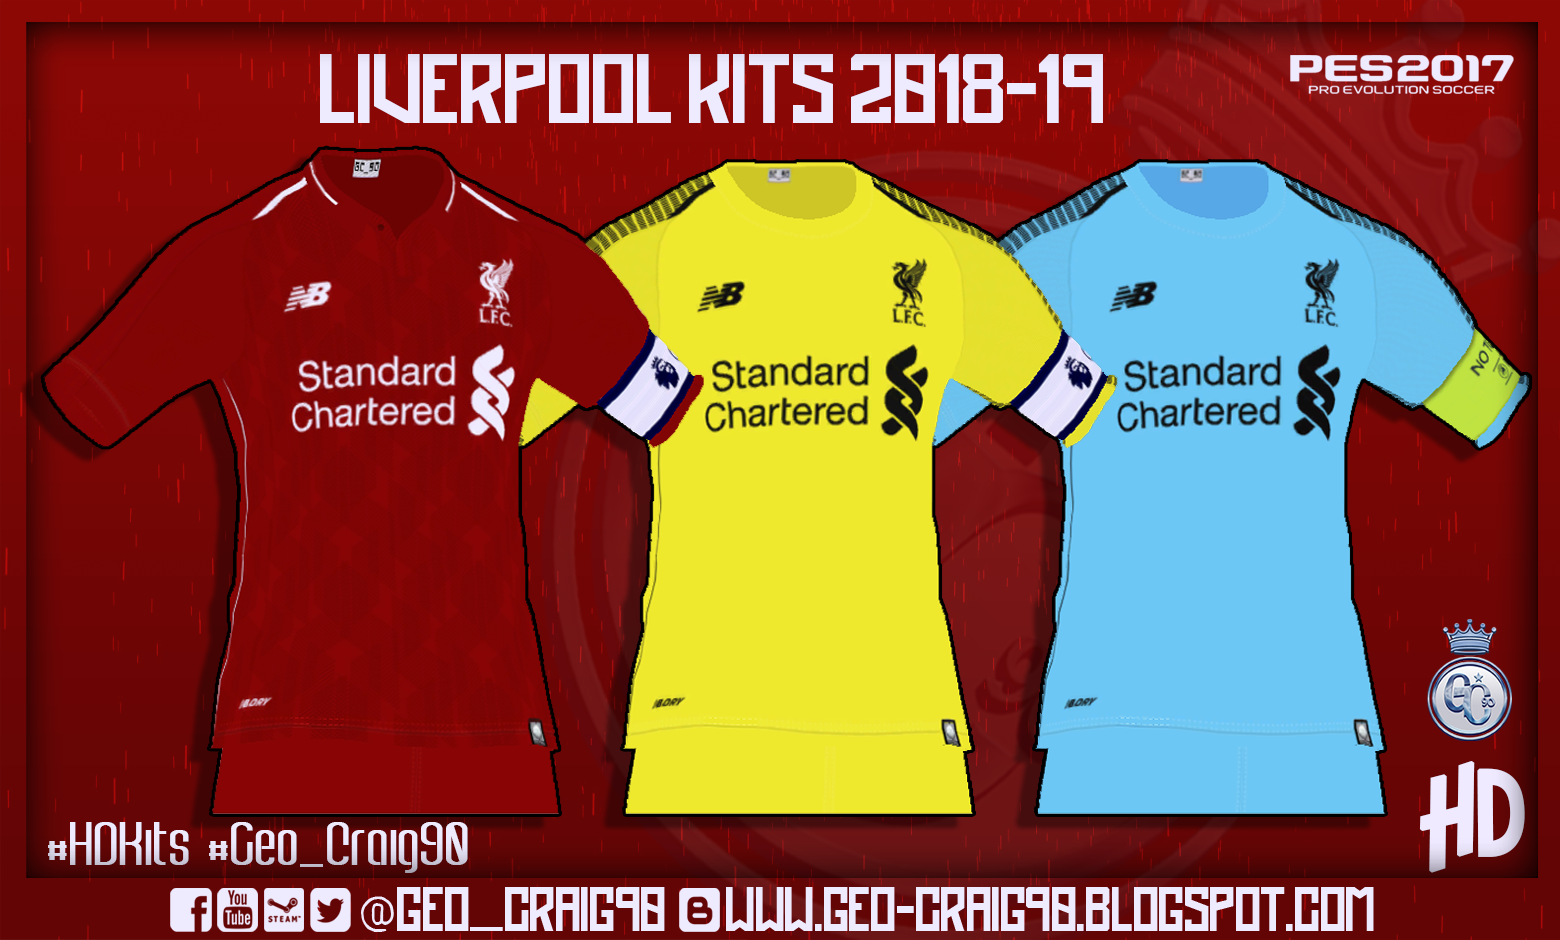 PES 2017 Liverpool Kits 2018-19 Beta by Geo-Craig90